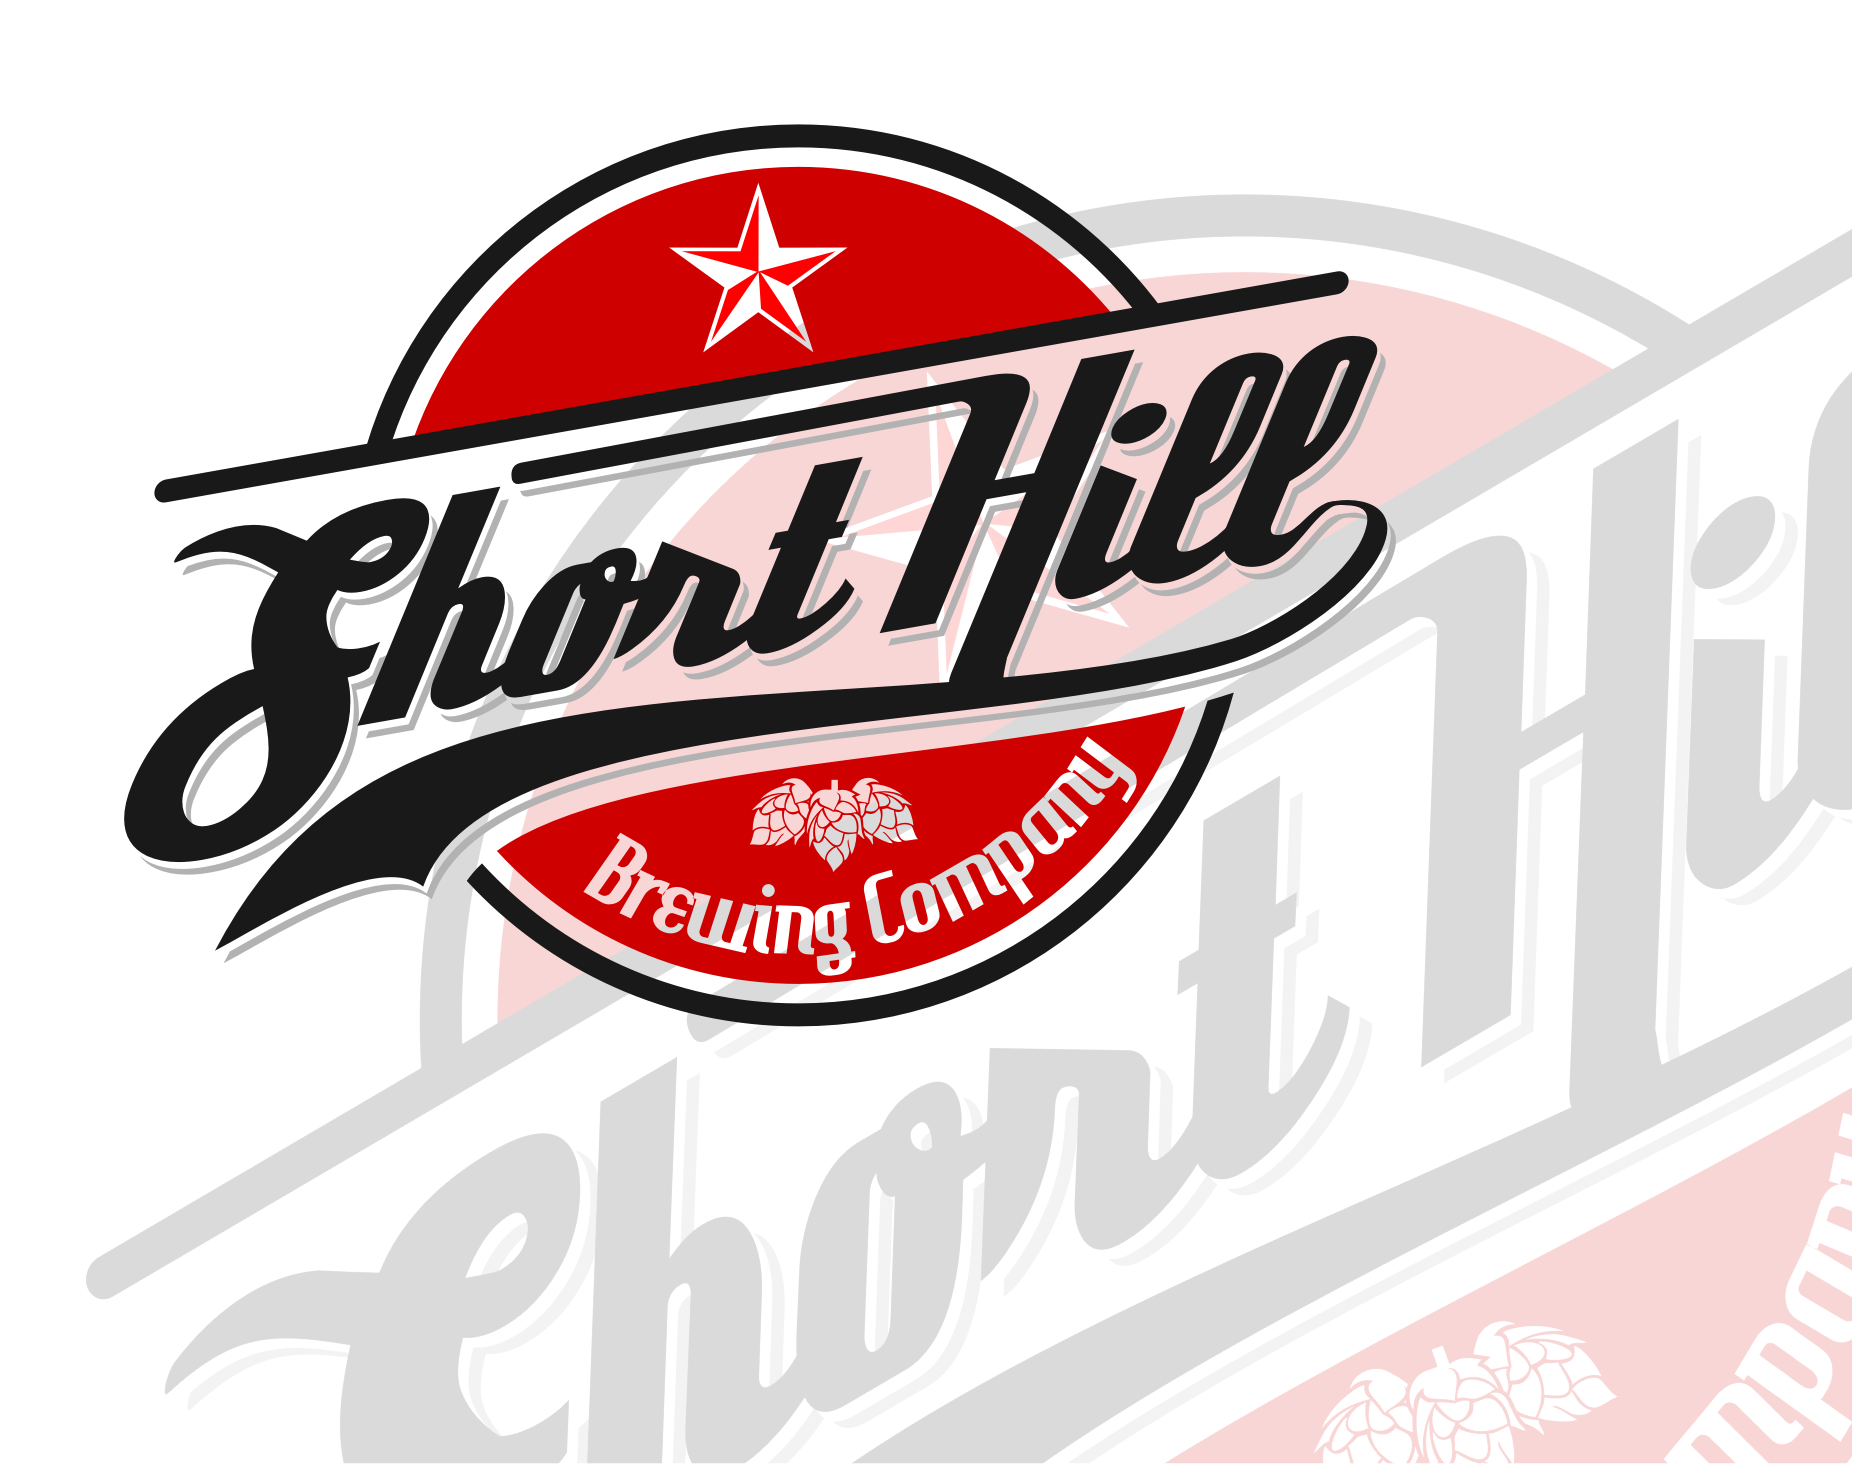 Logo Design by Tille Famz - Entry No. 39 in the Logo Design Contest Unique Logo Design Wanted for Short Hill Brewing Company.